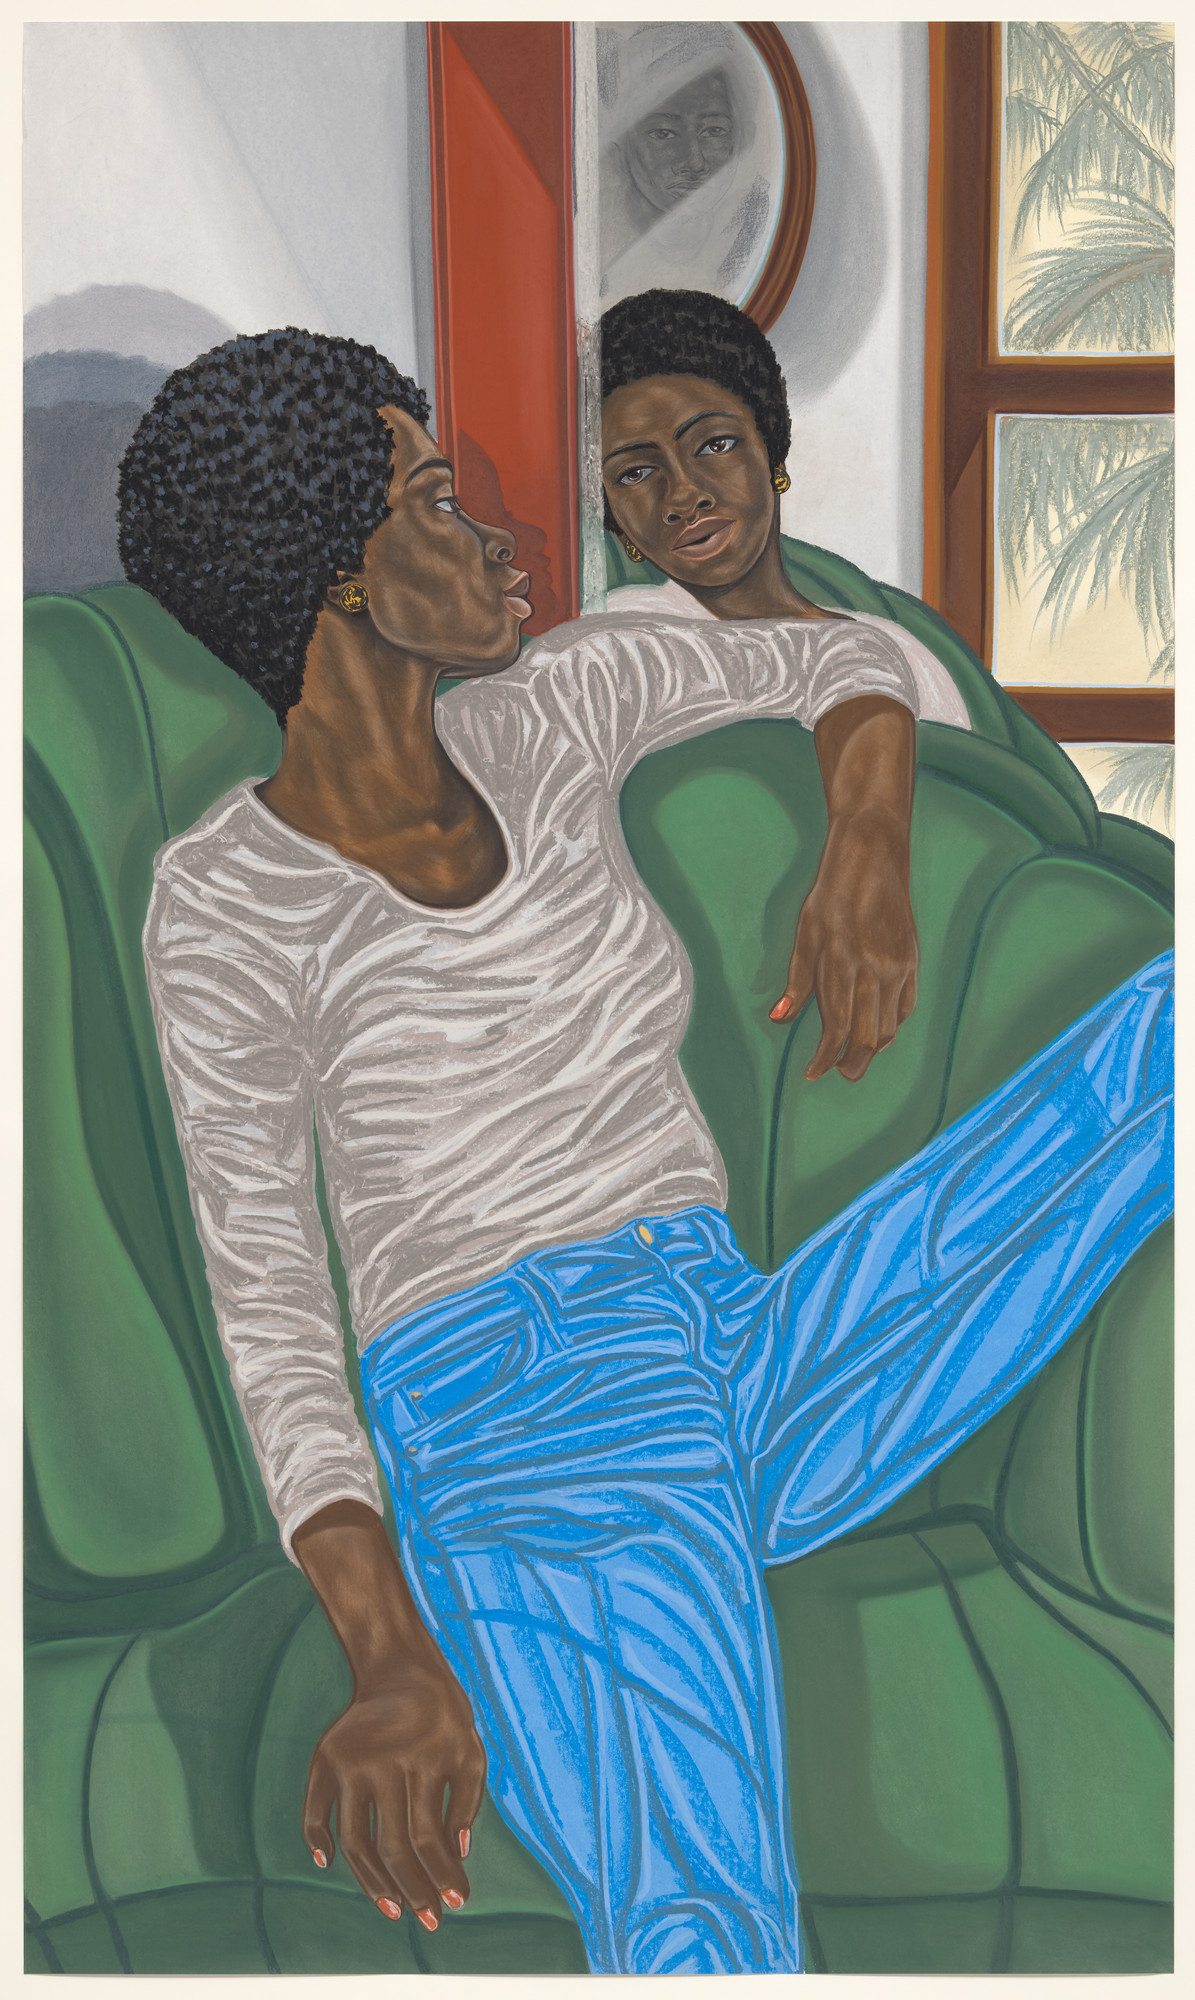 Toyin Ojih Odutola. Projection Enclave. 2018